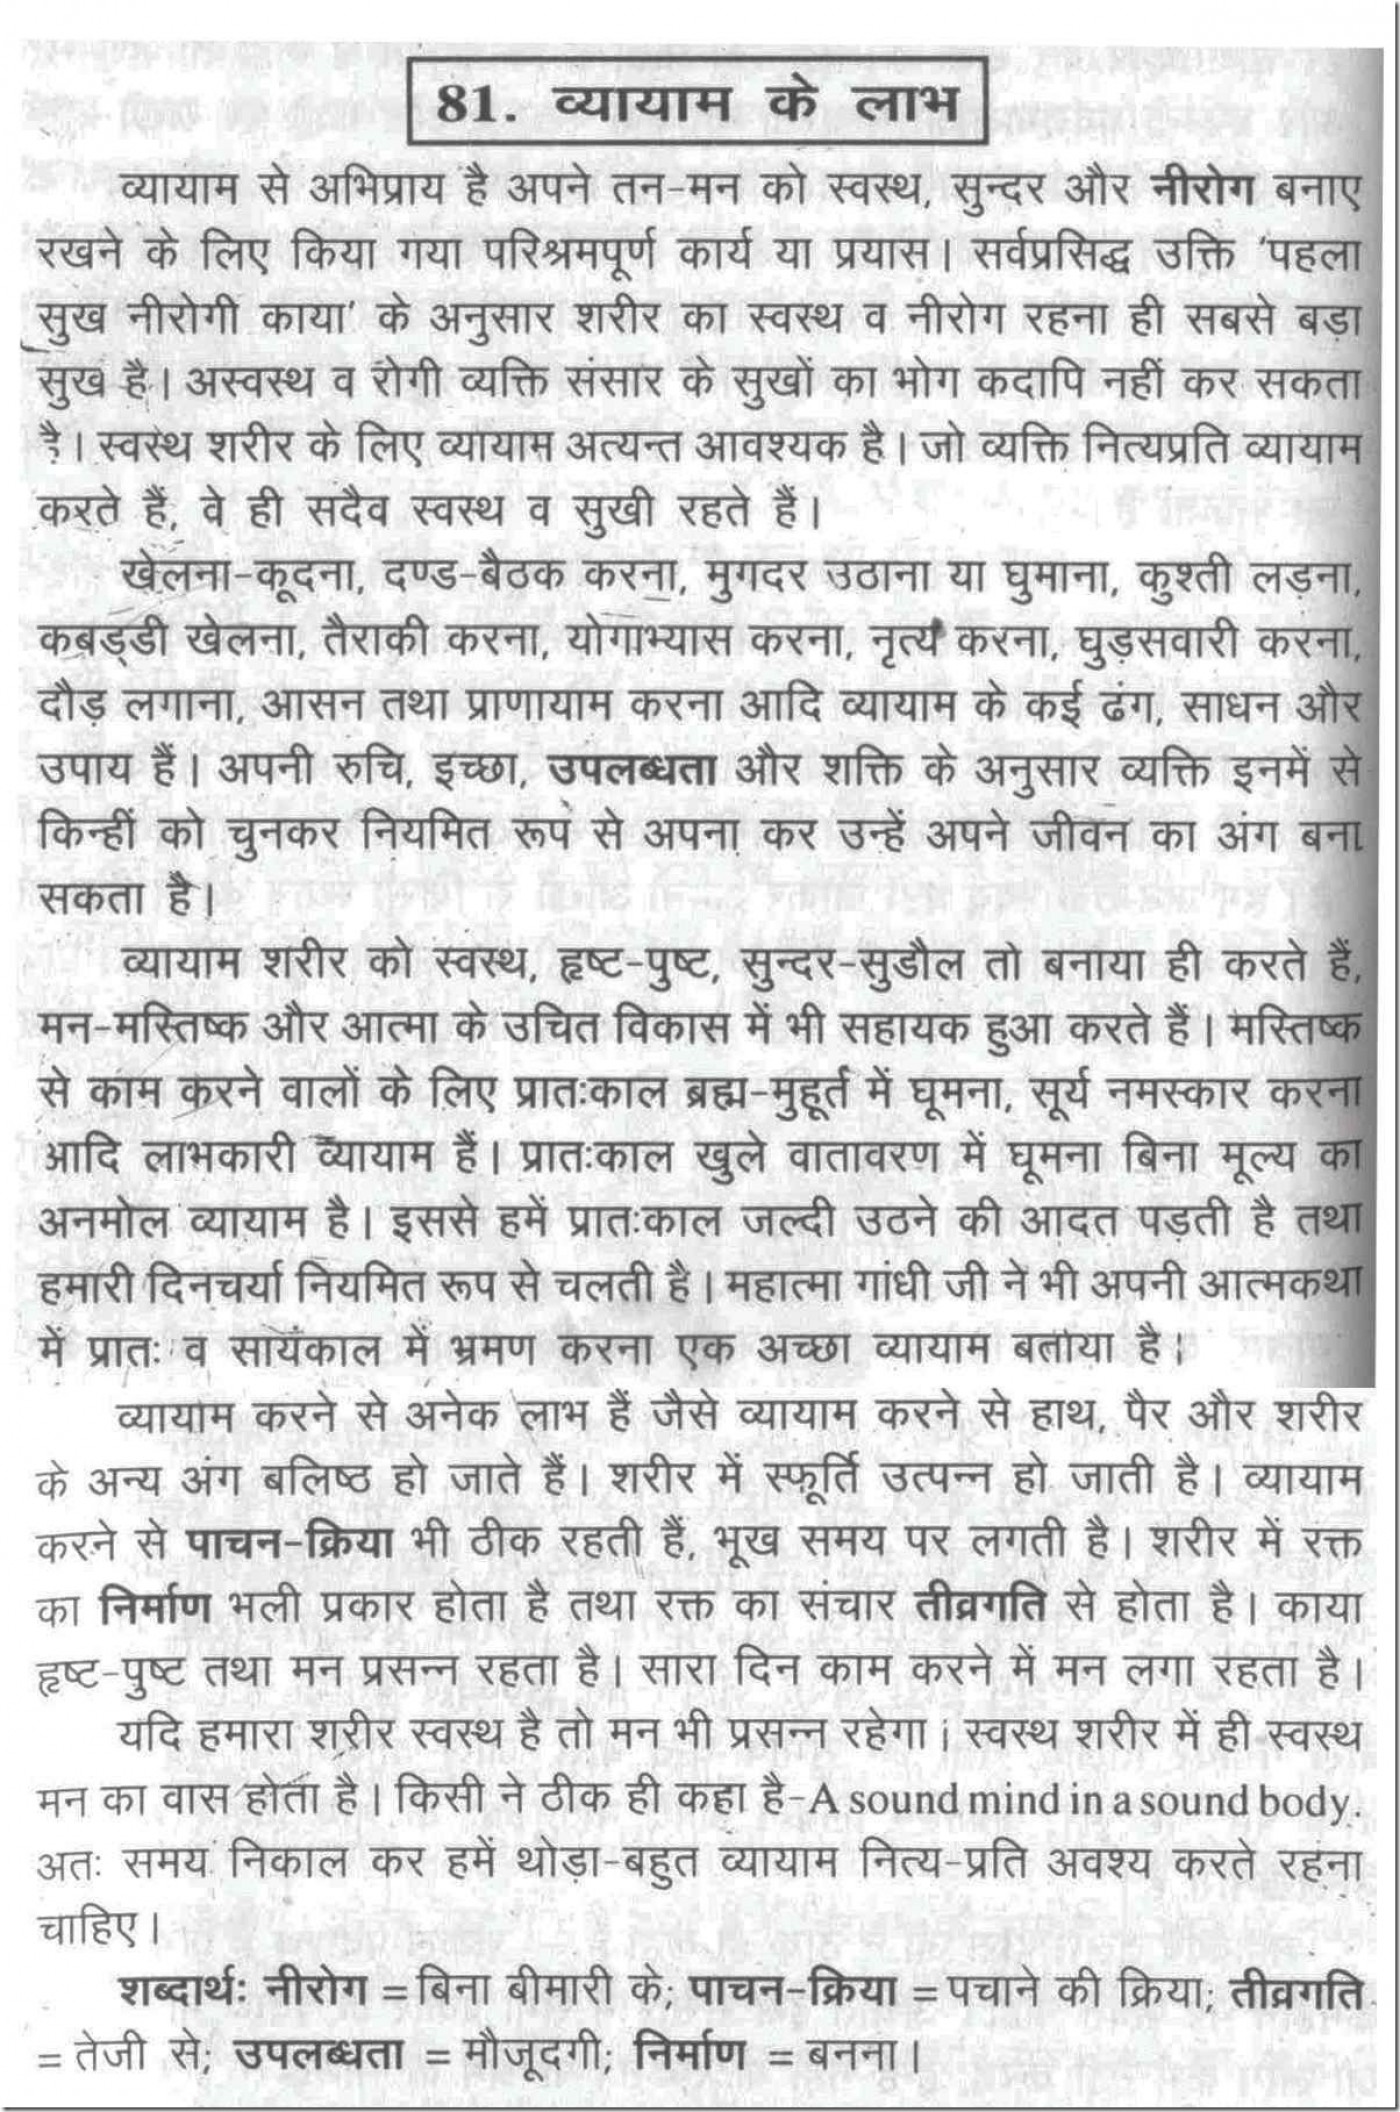 011 2563478896 Essay On Health And Fitness Through Food Good Habits In Hindi Exceptional Bad Eating Habit 1400